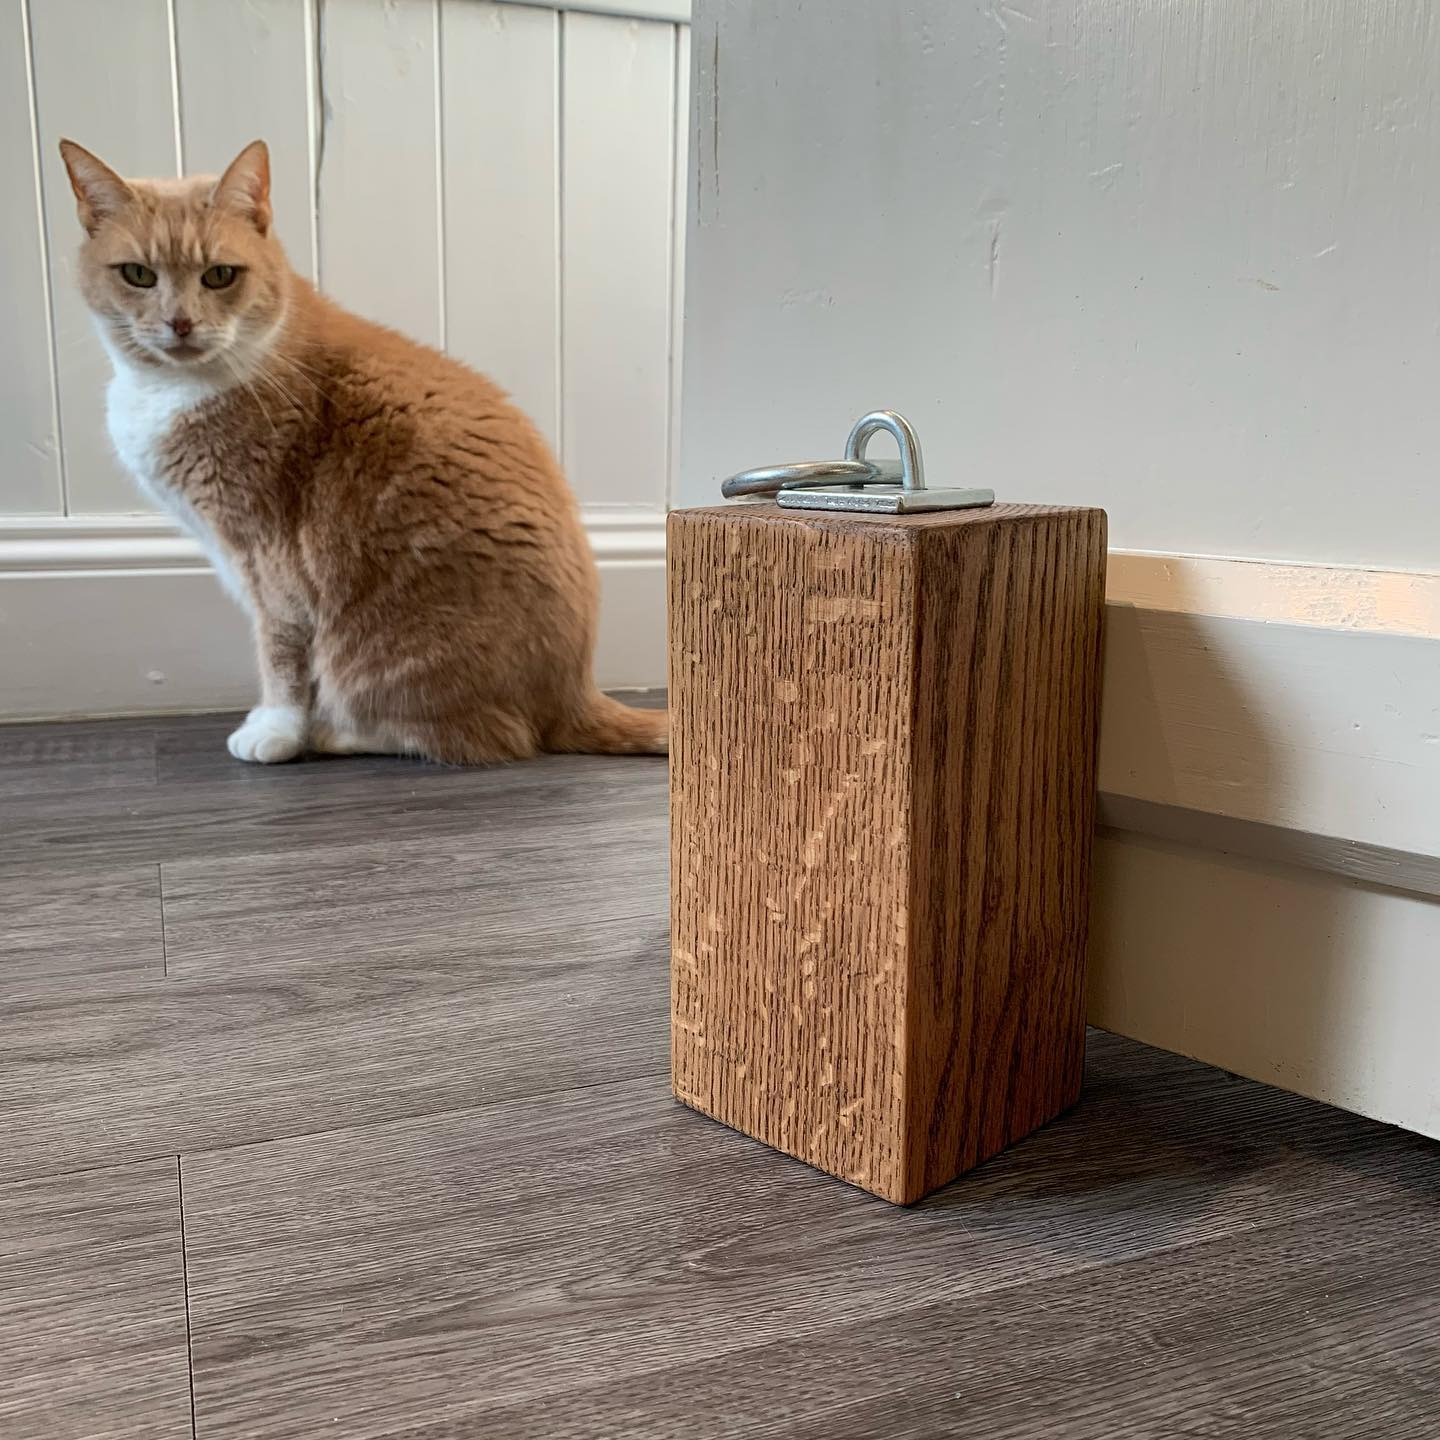 Cat Photo Bomb! Georgie always the little helper! Taking shots to restock the doorstops online... it's taking a little longer than usual.......#Online #shop #photobomb #doorstop #oak #character #personality #ginger #gingercat #workingfromhome #handcrafted #homedecor